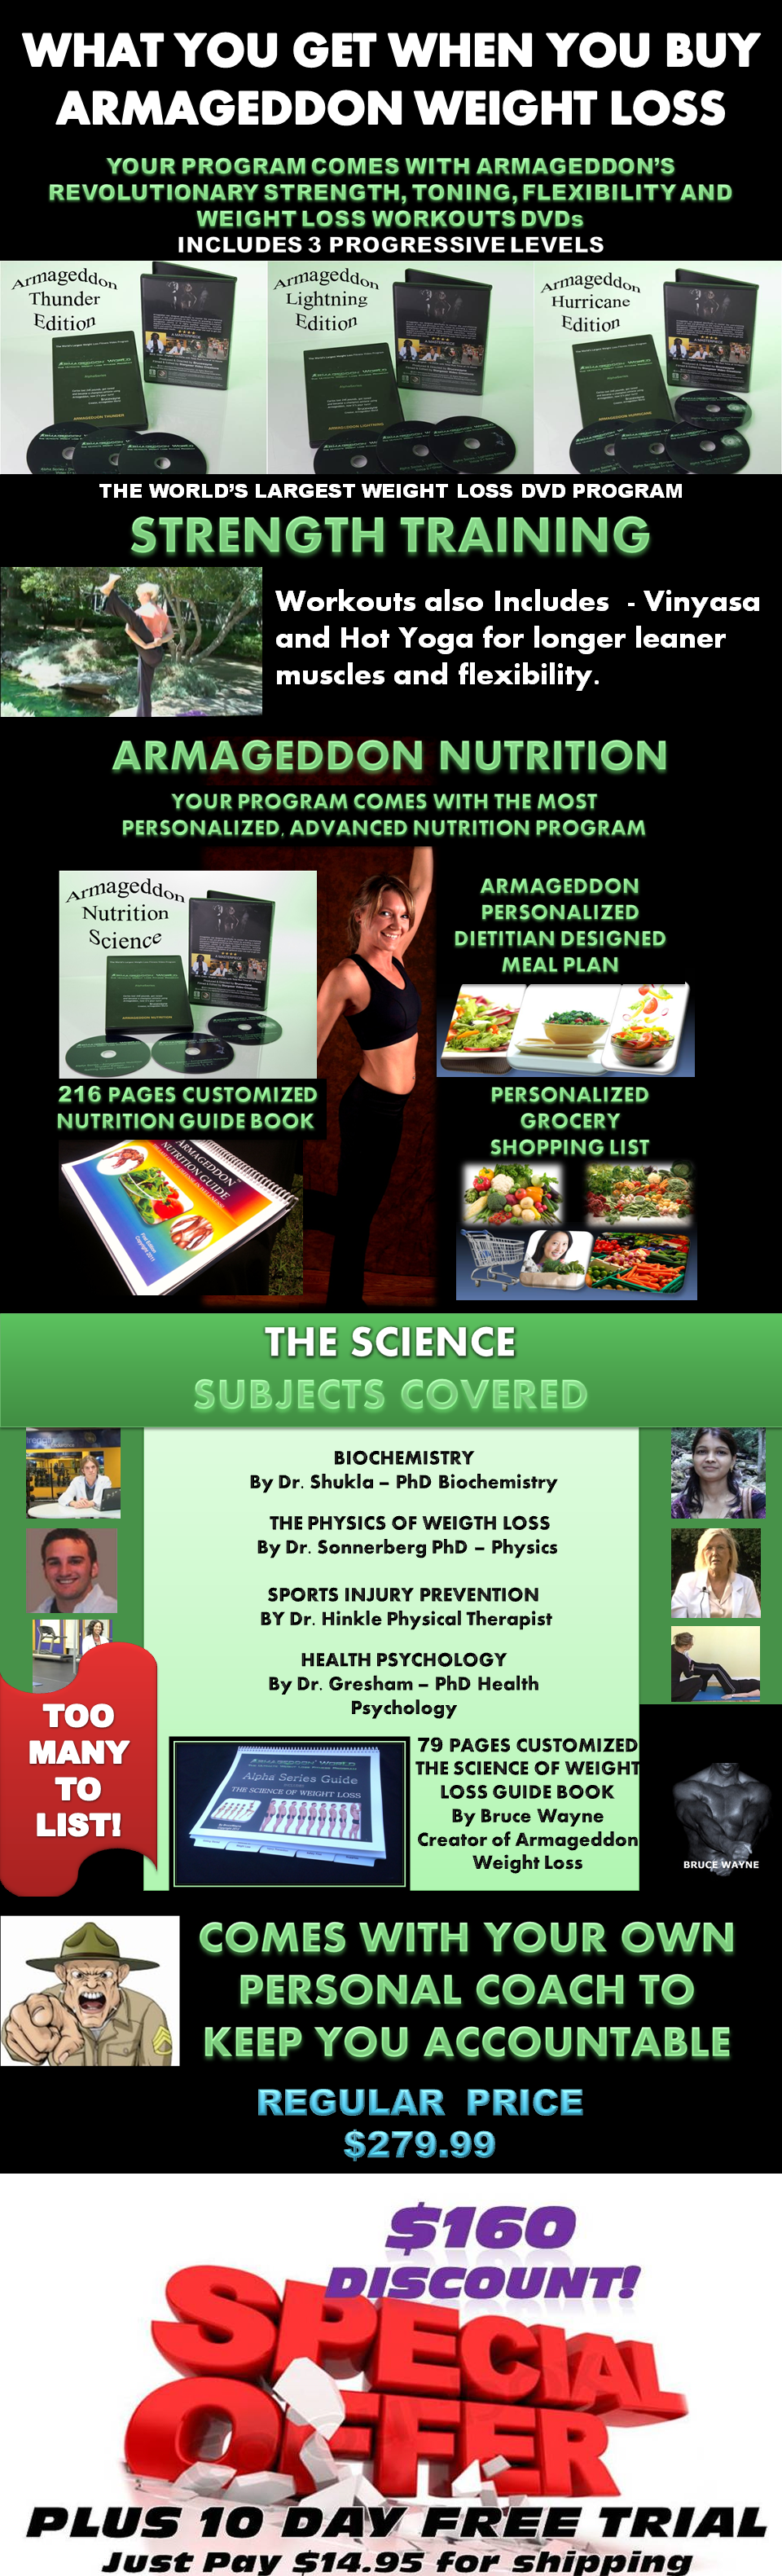 ARMAGEDDON WEIGHT LOSS PRODUCT LISTING - THE BEST WEIGHT LOSS DVD PROGRAM FOR MEN AND WOMEN - BEST EXERCISE DVD